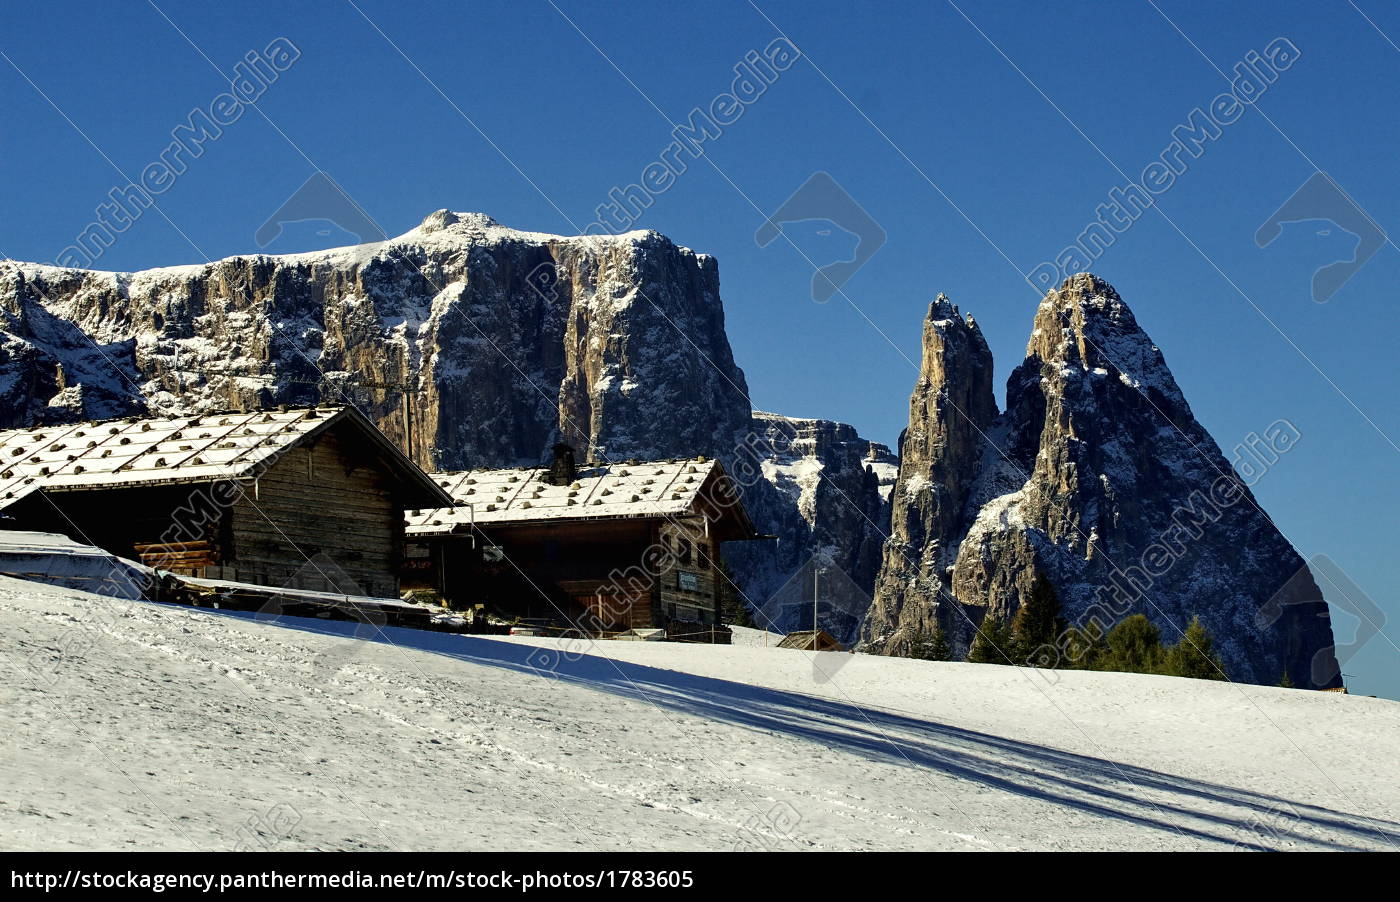 mountain, huts, and, sleds - 1783605